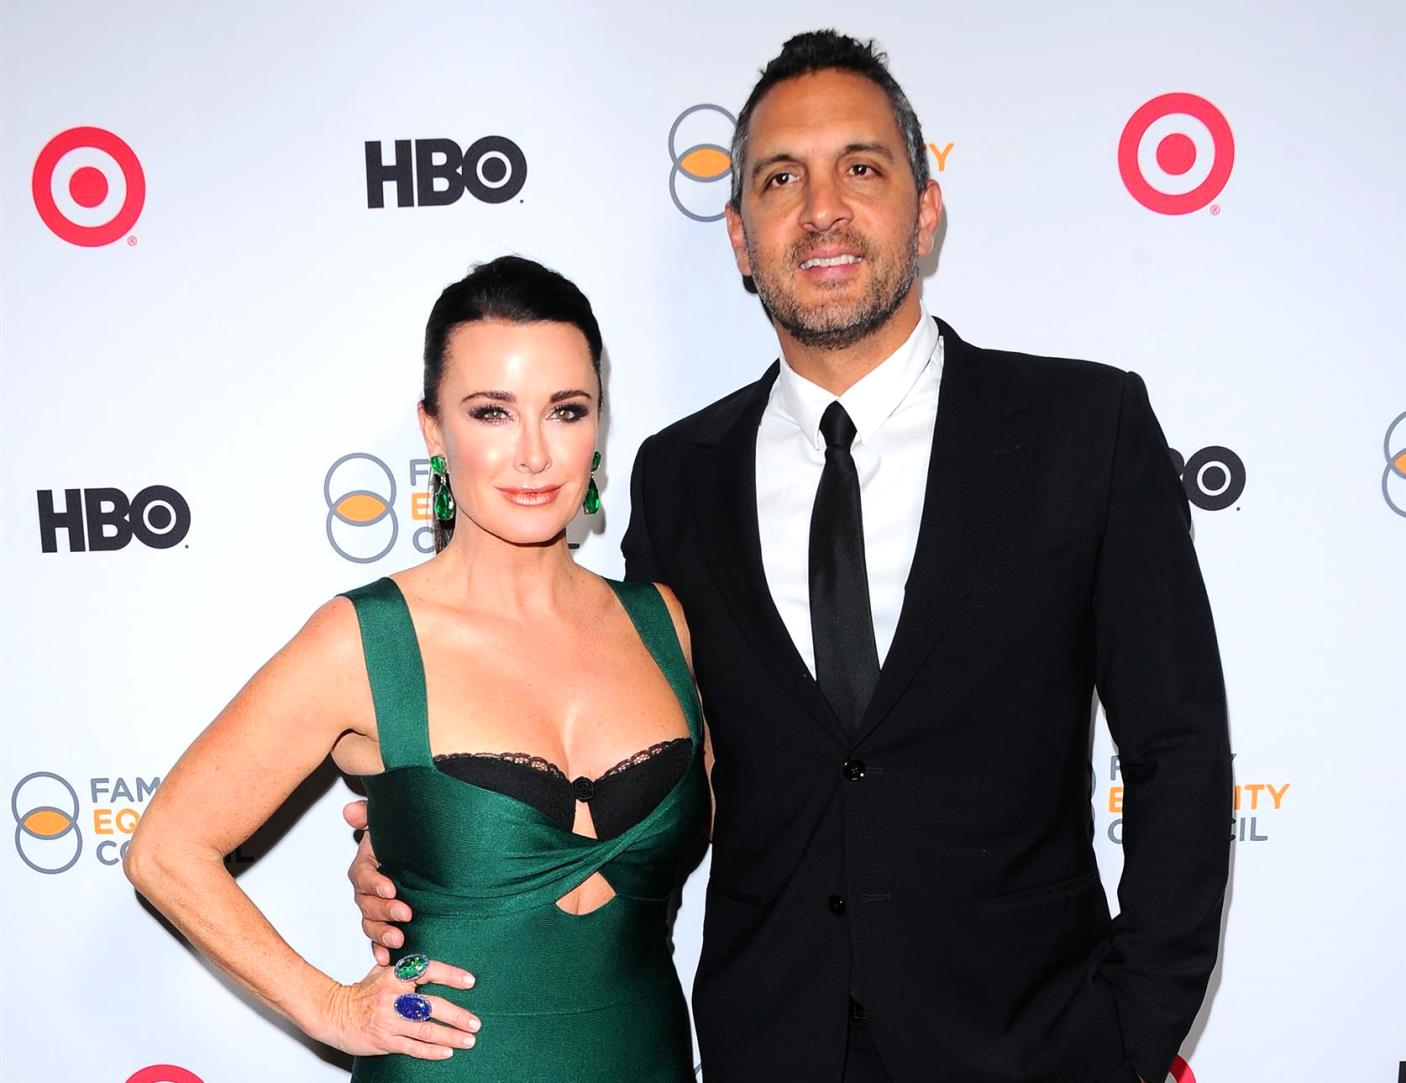 RHOBH Mauricio Umansky responds to real estate lawsuit